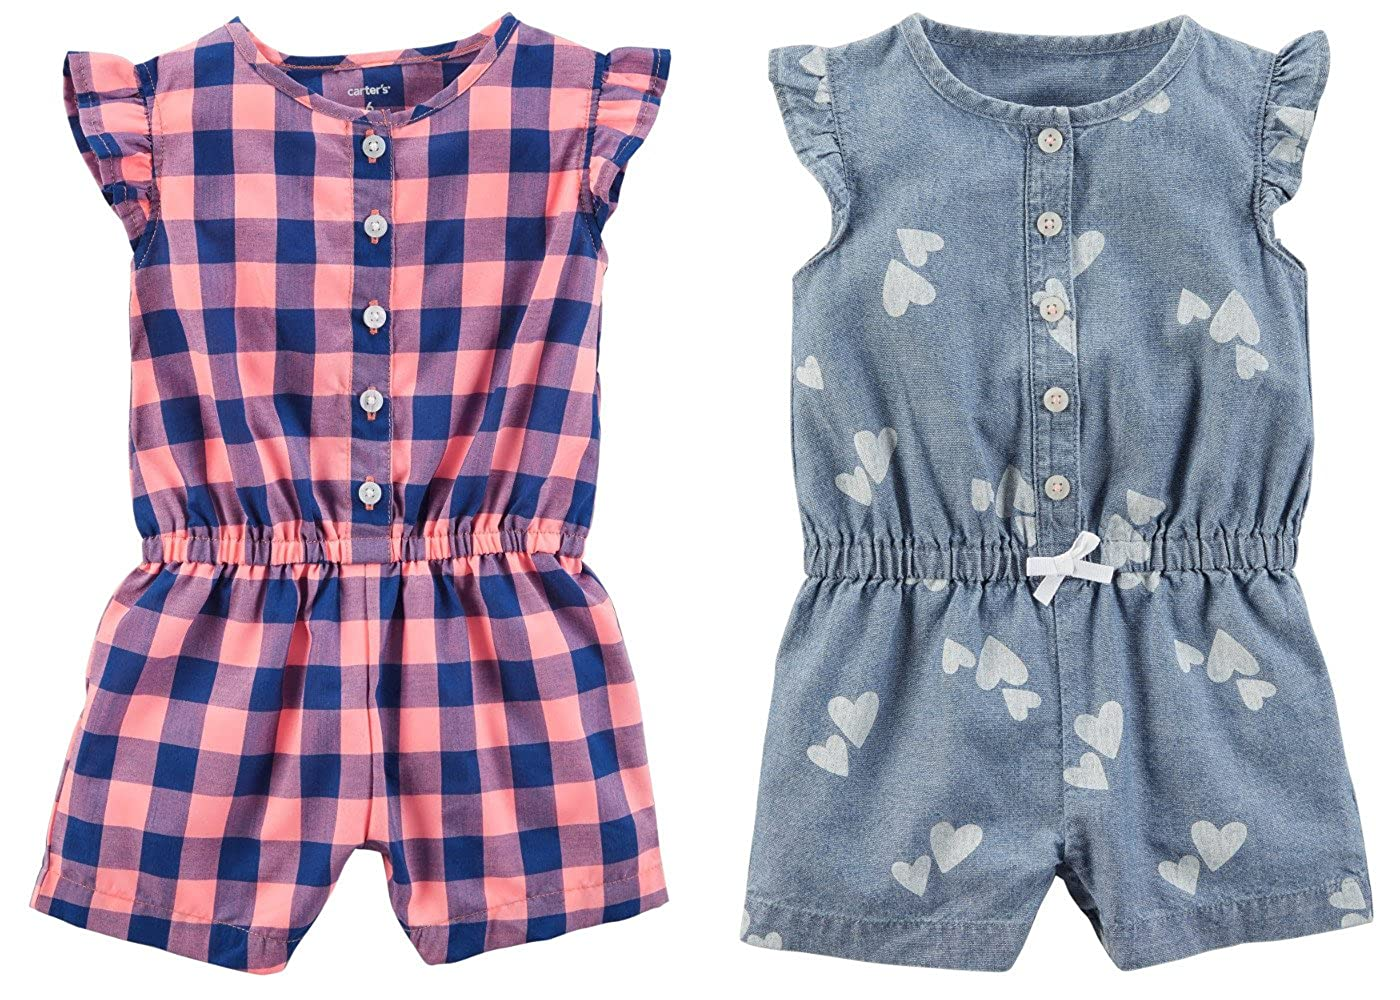 Carters Set of 2 Baby Girls Shorts Rompers